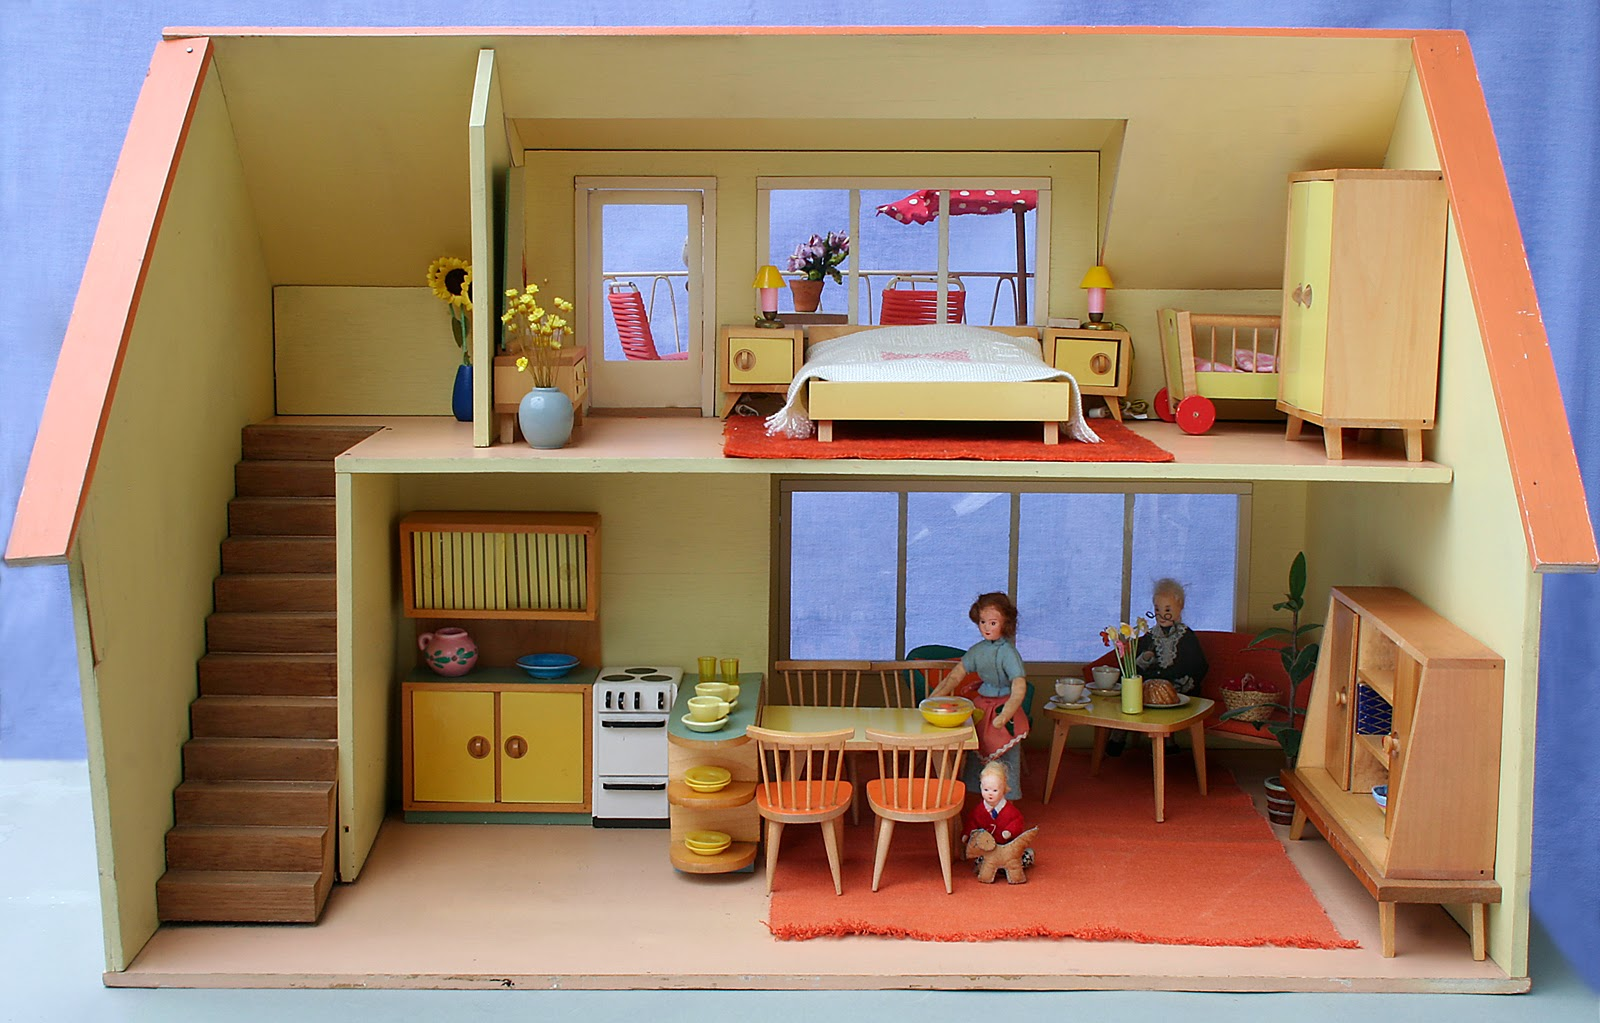 diepuppenstubensammlerin puppenhaus mit teich 1959 bodo hennig dolls house with a pond. Black Bedroom Furniture Sets. Home Design Ideas